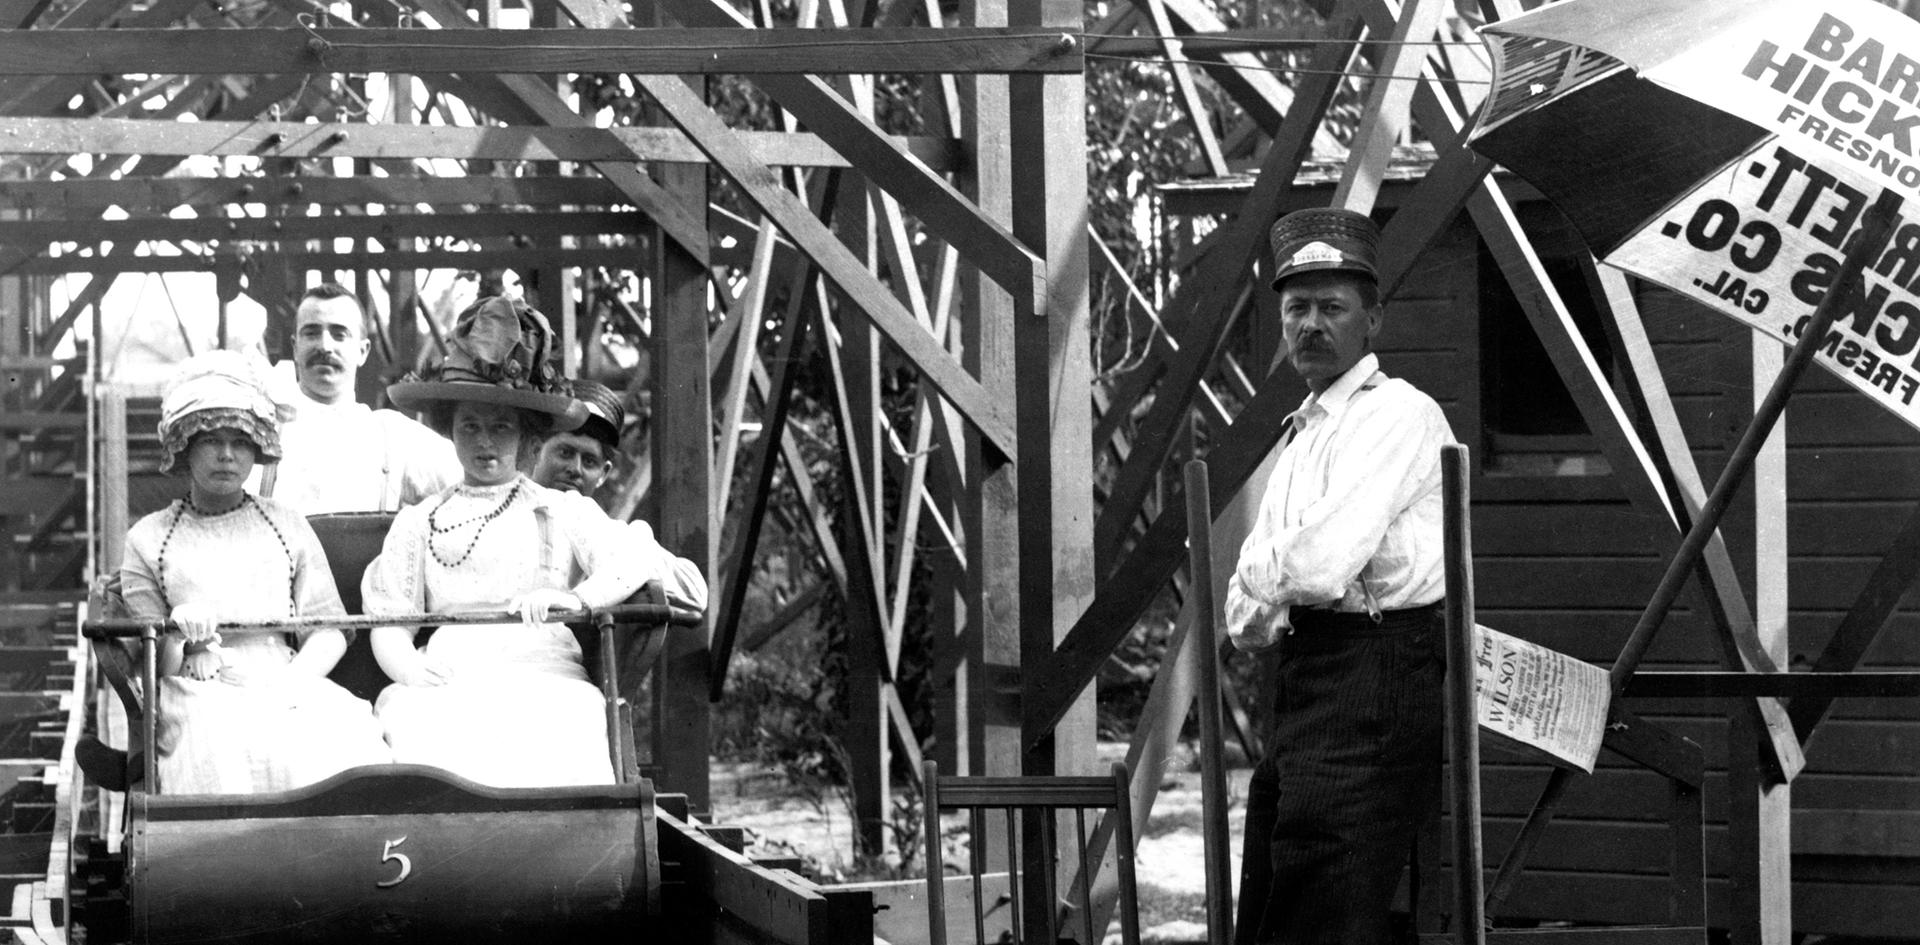 Zapp's Park RollerCoaster with two rides in car number 5 ready to enjoy a rickety adventure. Taken in 1911 by Pop Laval.